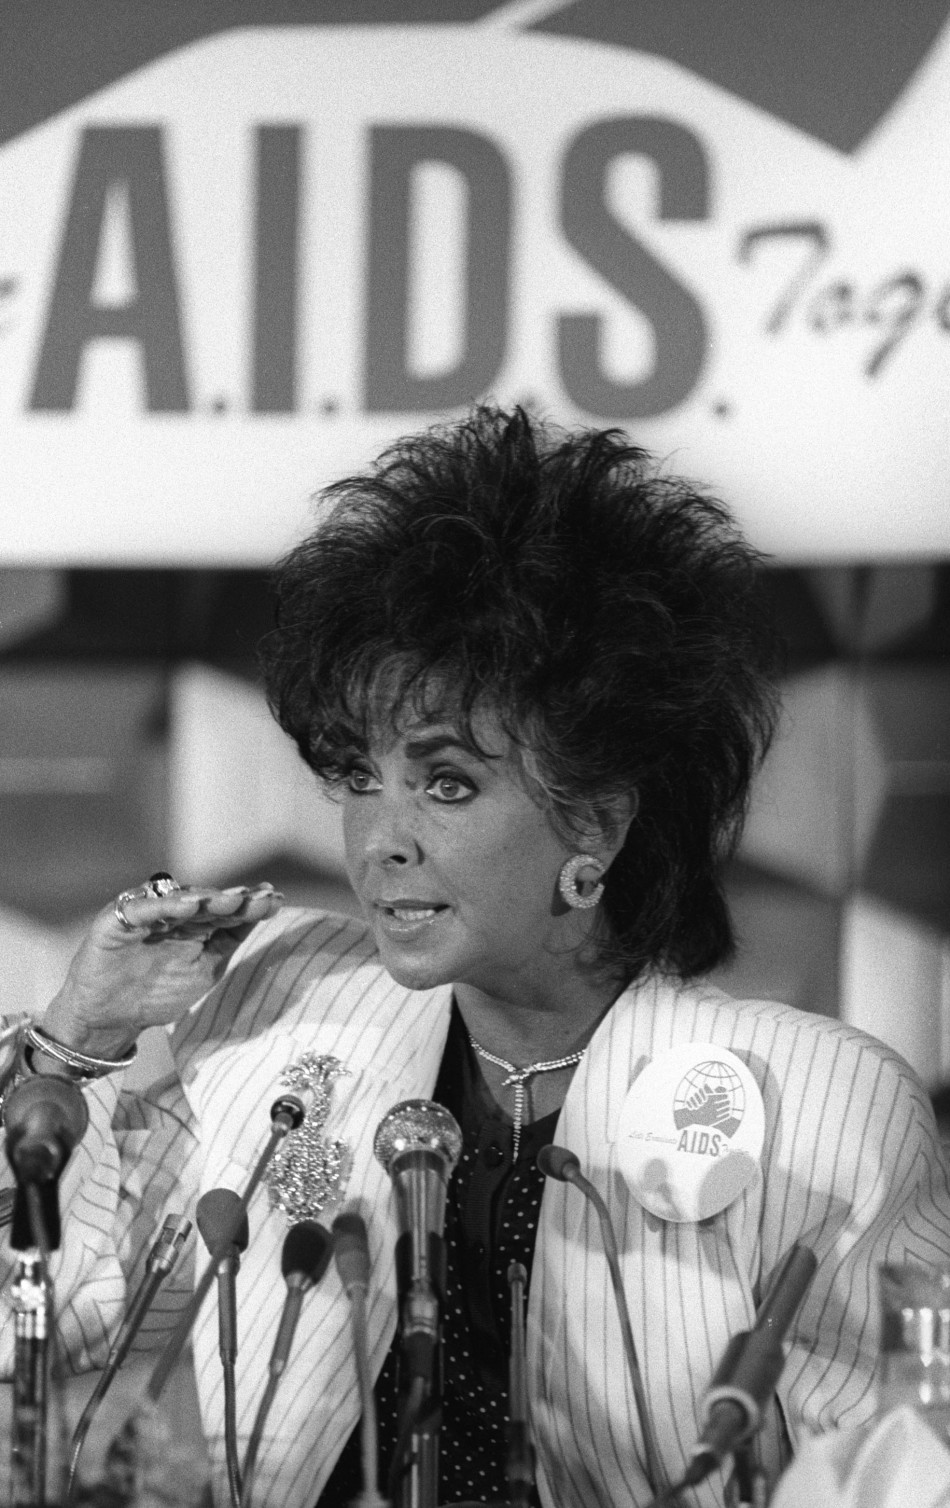 the contributions of gays and lesbians to the aids epidemic After years of hostility, the aids crisis inspired lesbians and gay men to reconcile their animosity, author lillian faderman said.